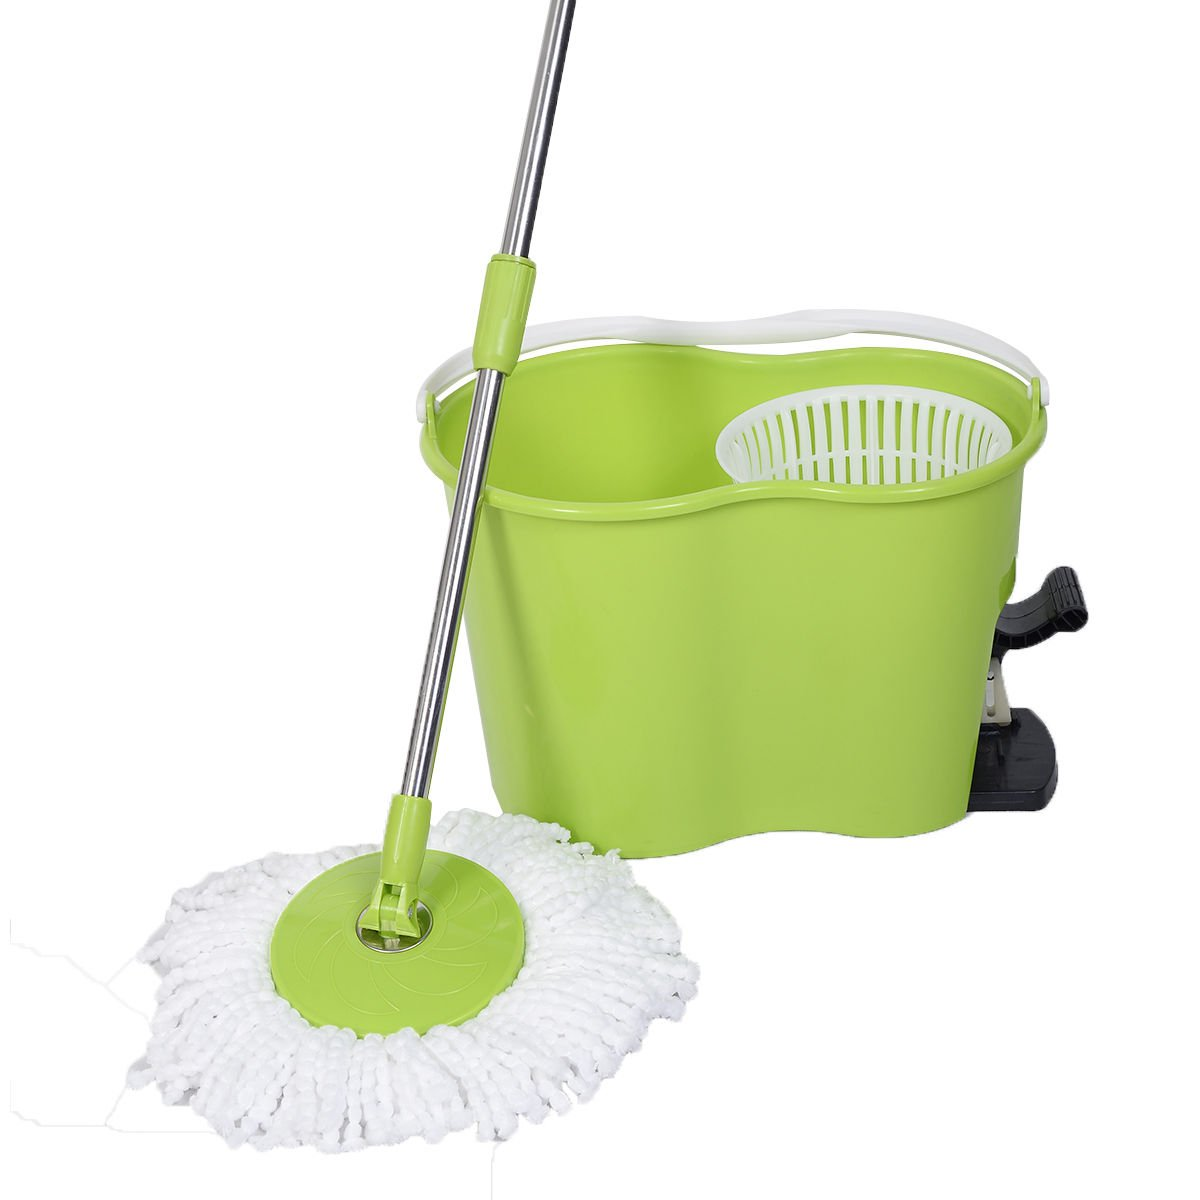 Goplus Microfiber Spinning Mop Easy Floor Mop W/ Bucket and 2 Head 360° Rotating (Green)